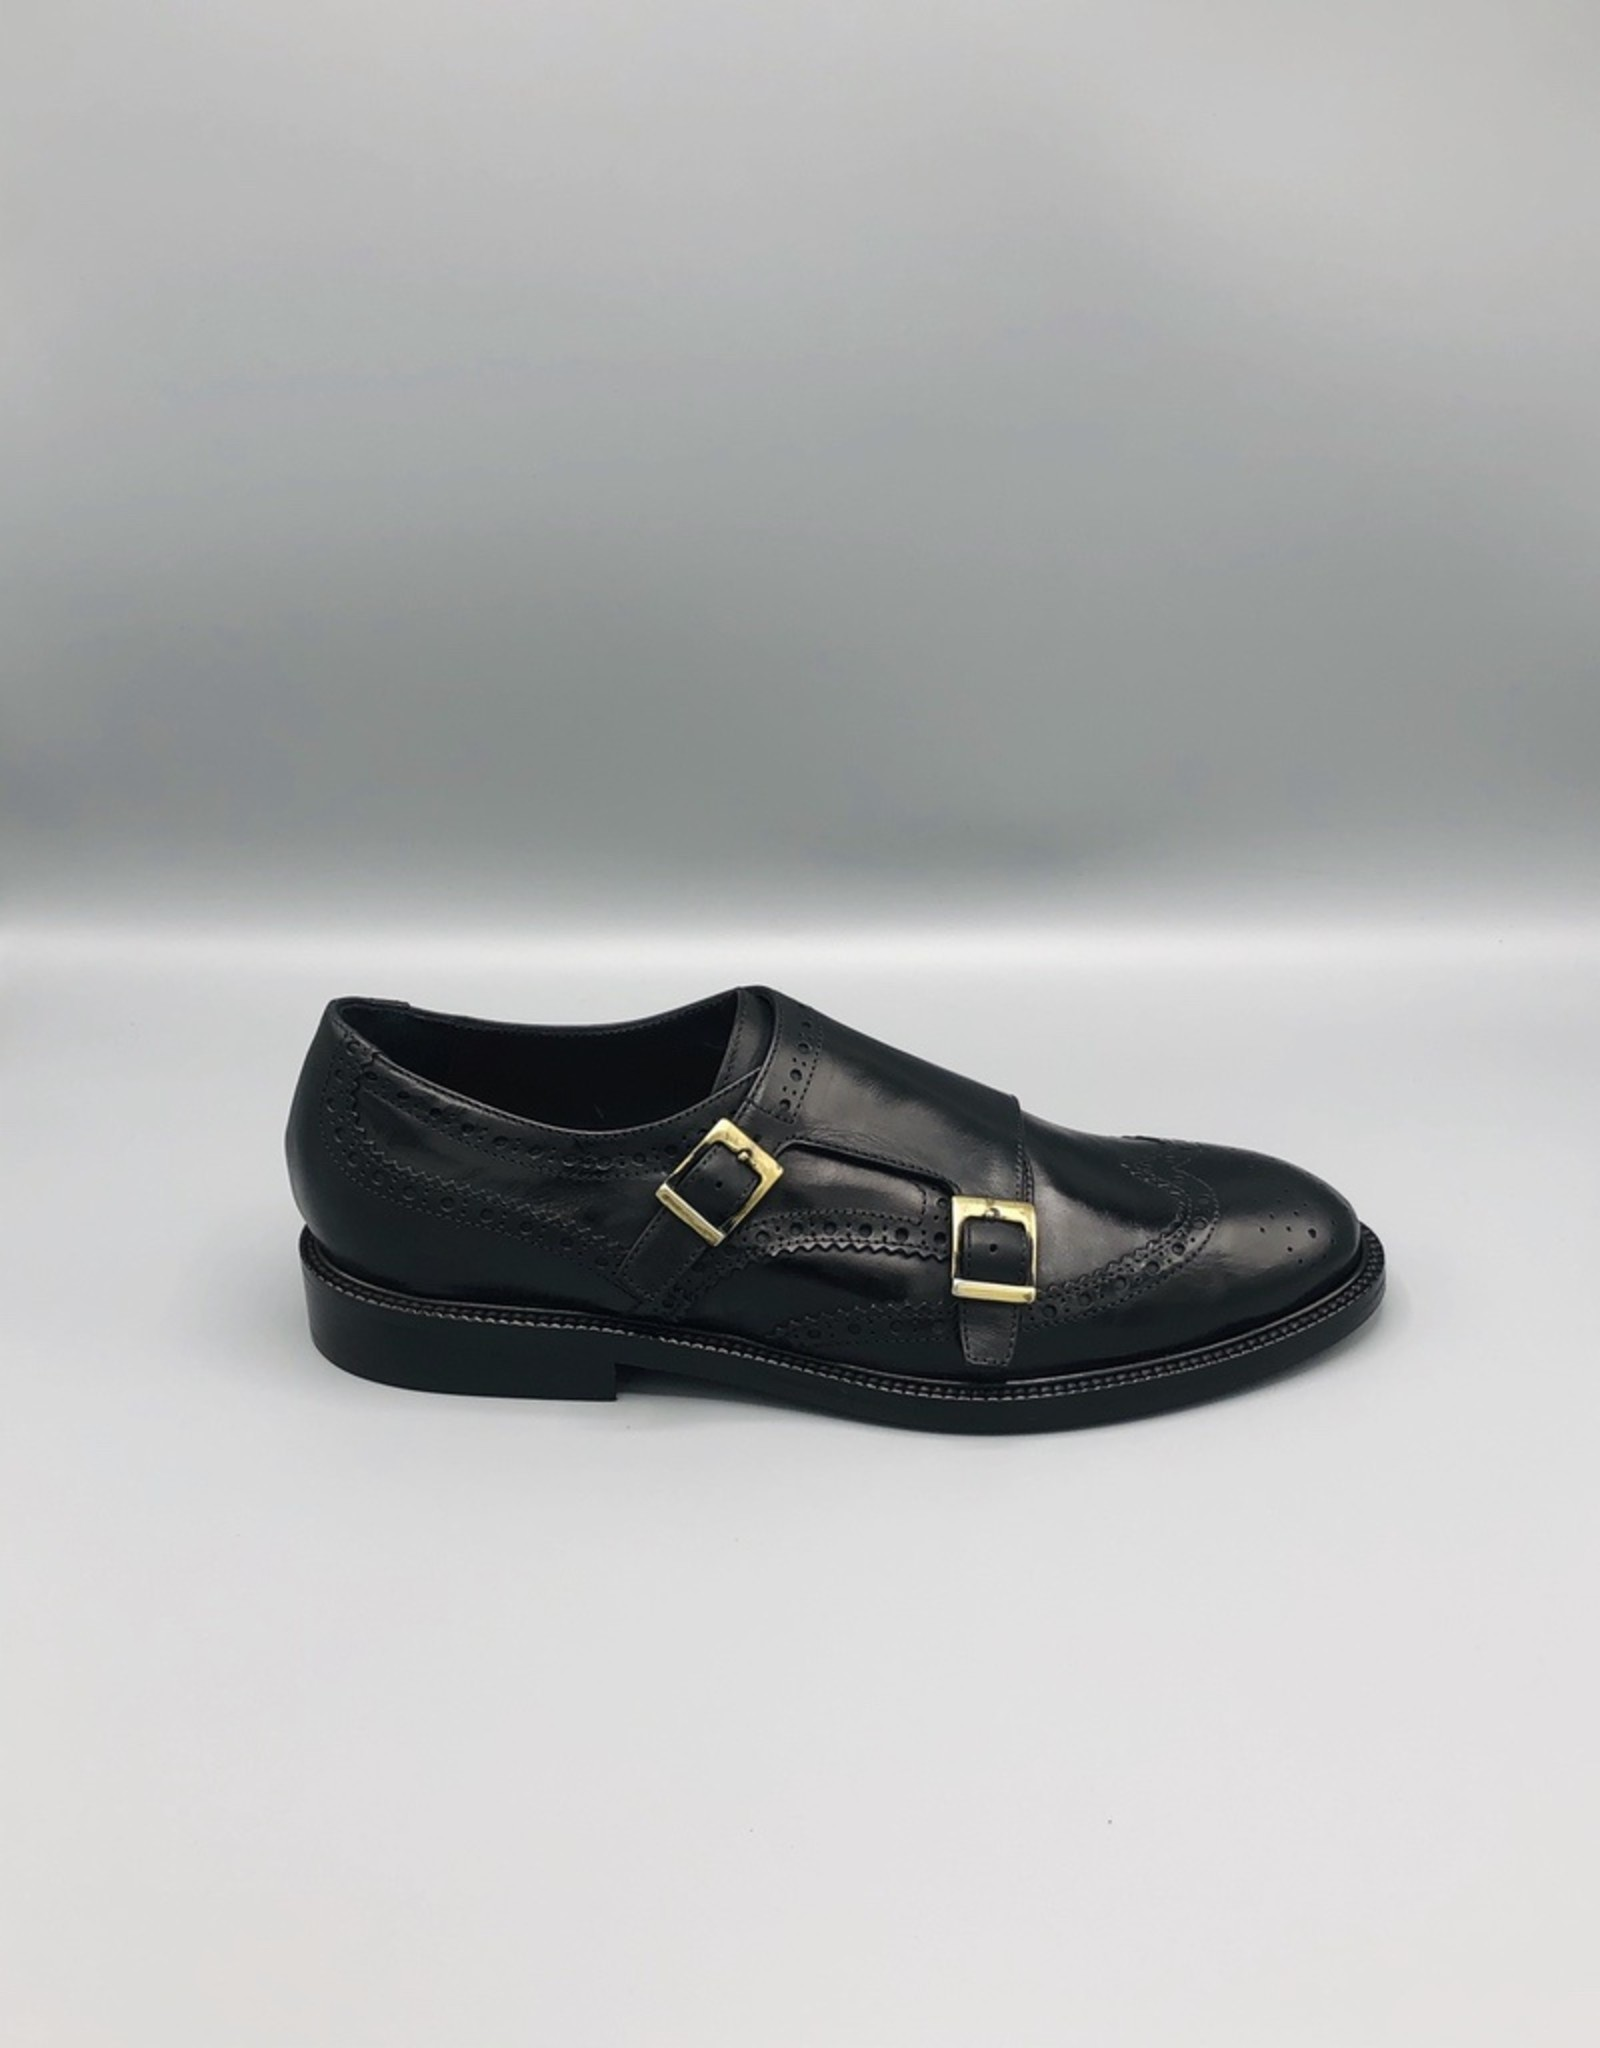 Manovie Toscane Manovie Toscane Double Monk Strap Dip Died Leather Brogue